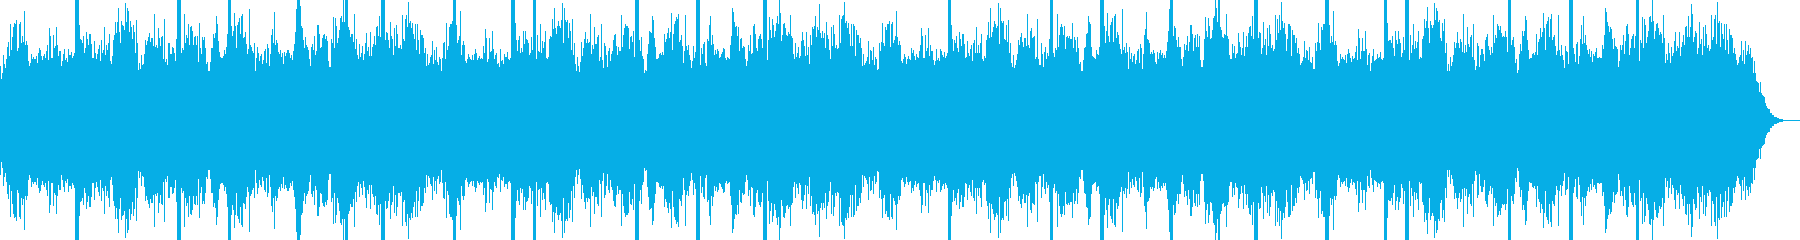 Spooky one scene of horror movie's reproduced waveform